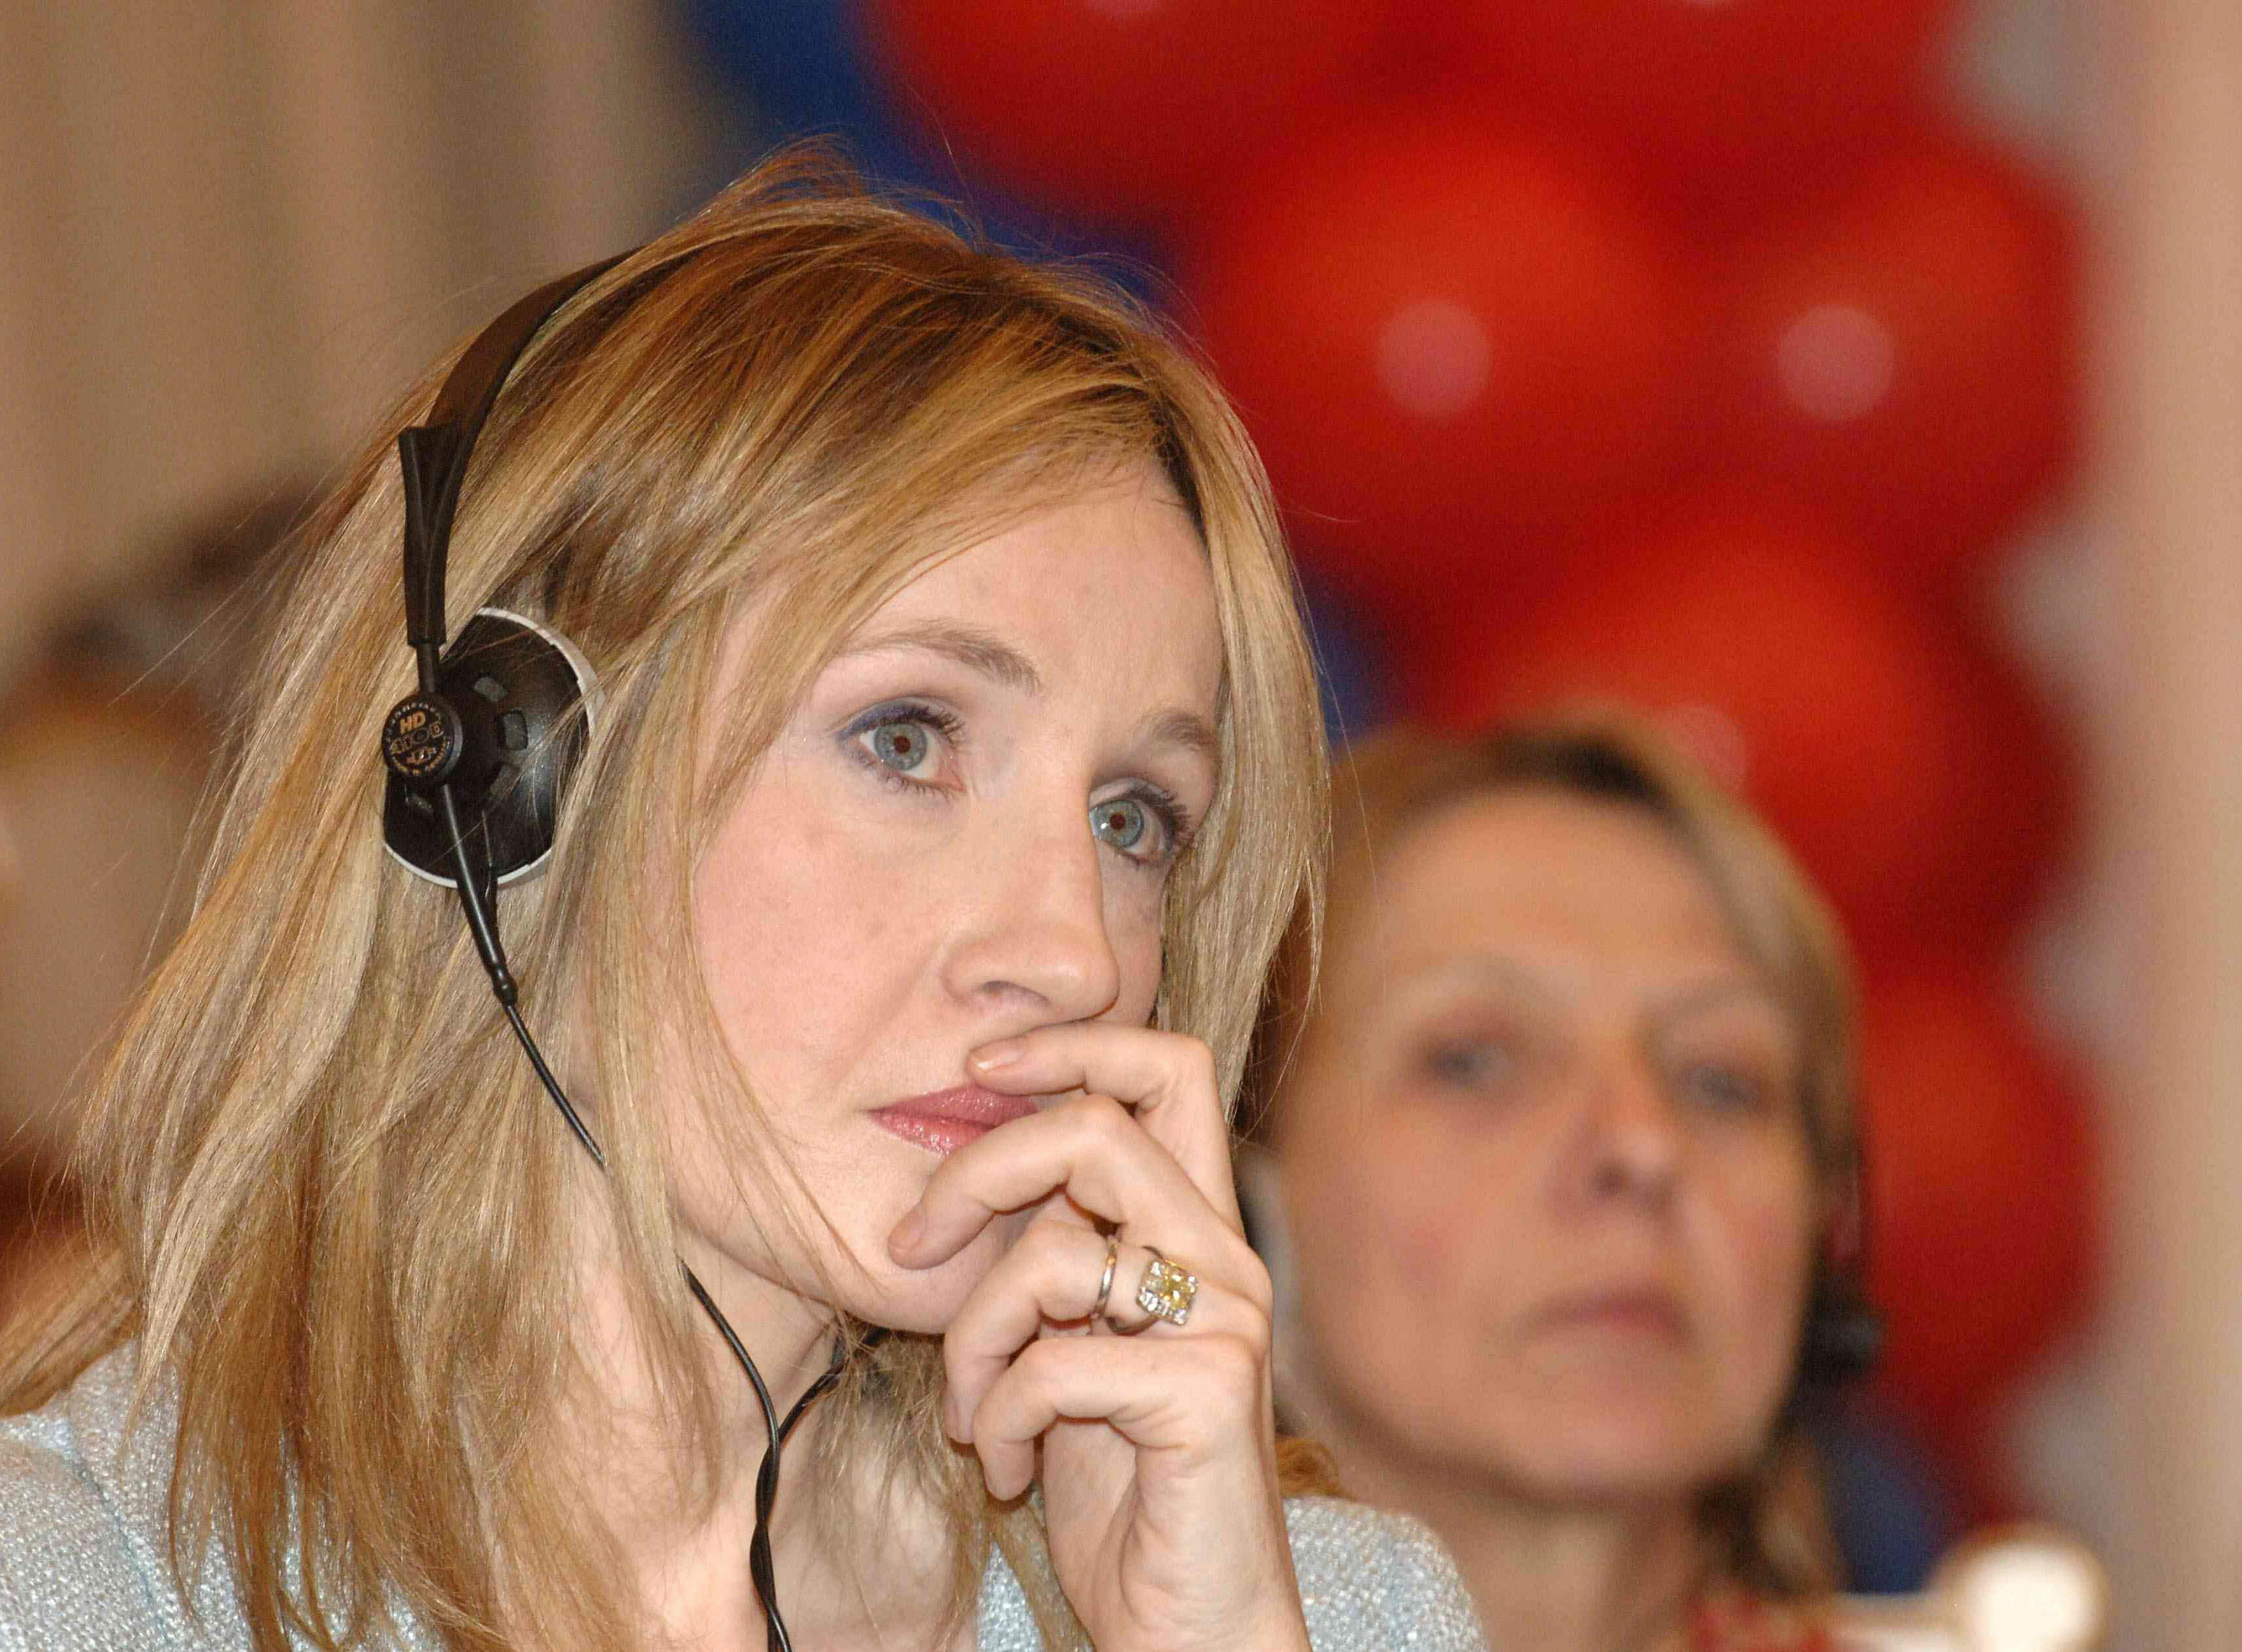 JK Rowling took part in the creation of a theatrical production by Harry Potter 06/28/2015 98